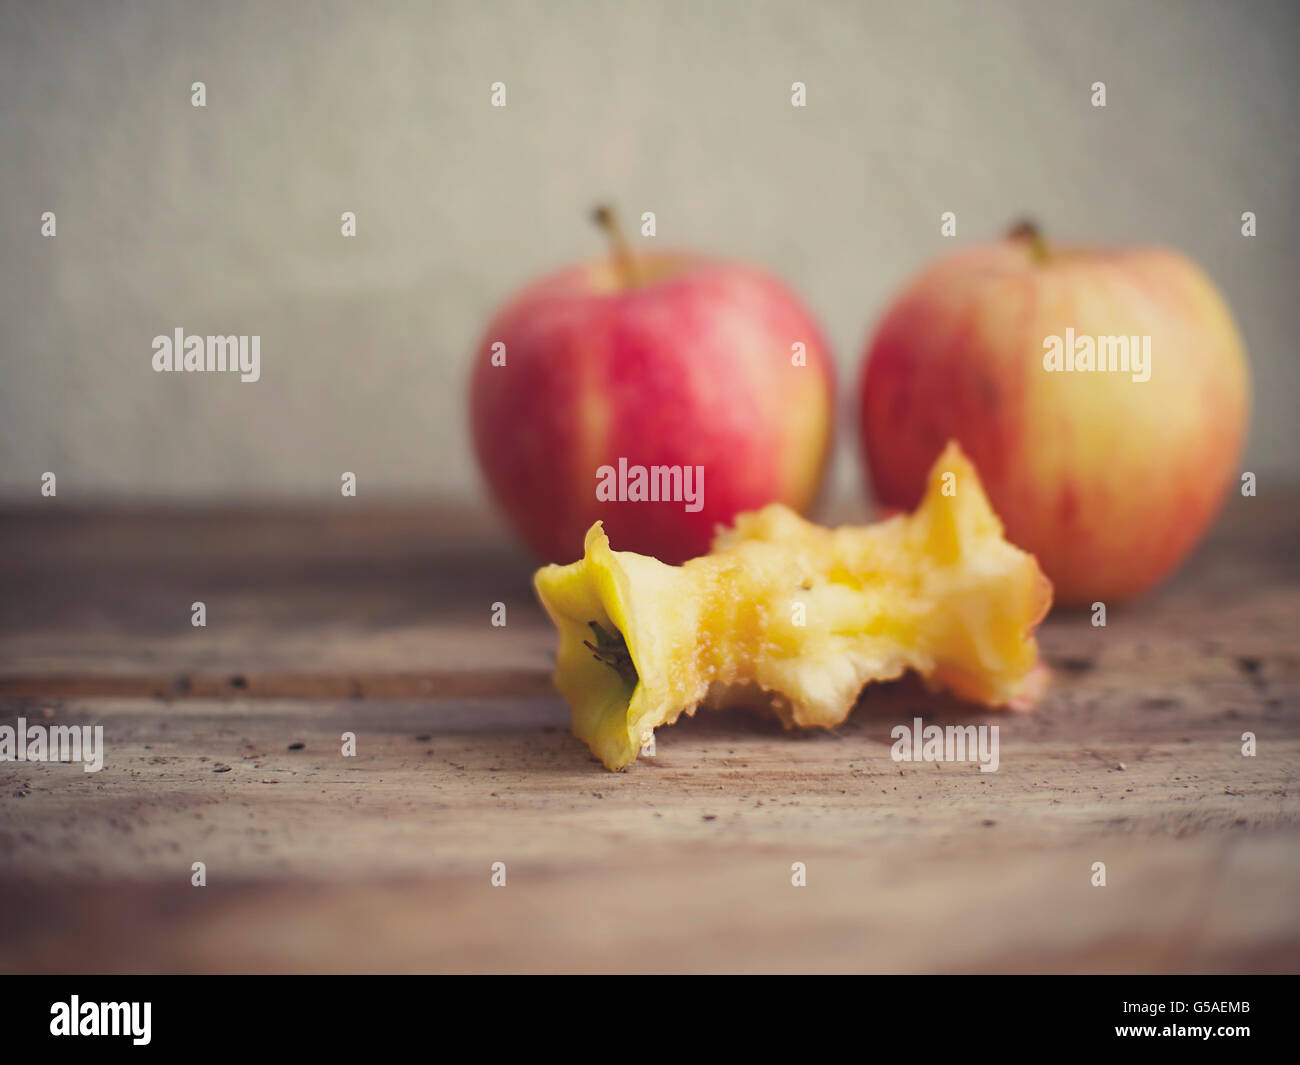 An apple core with two whole apples on the background. Vintage film style applied. - Stock Image